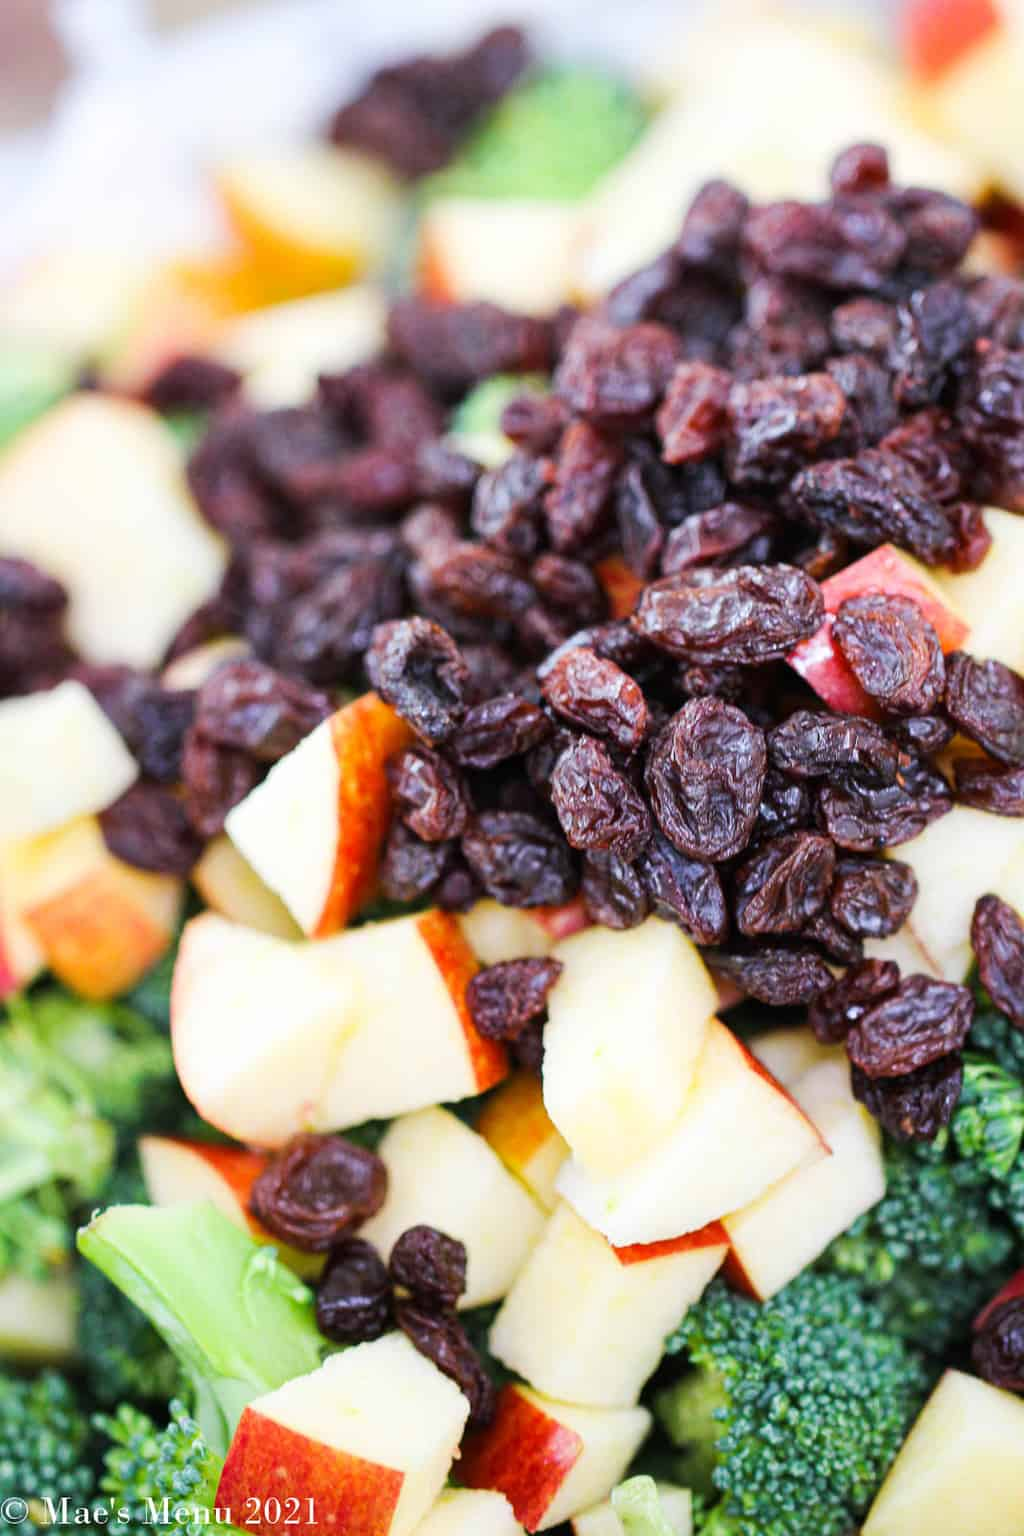 An up-close shot of raisins, applse, and broccoli in a large mixing bowl